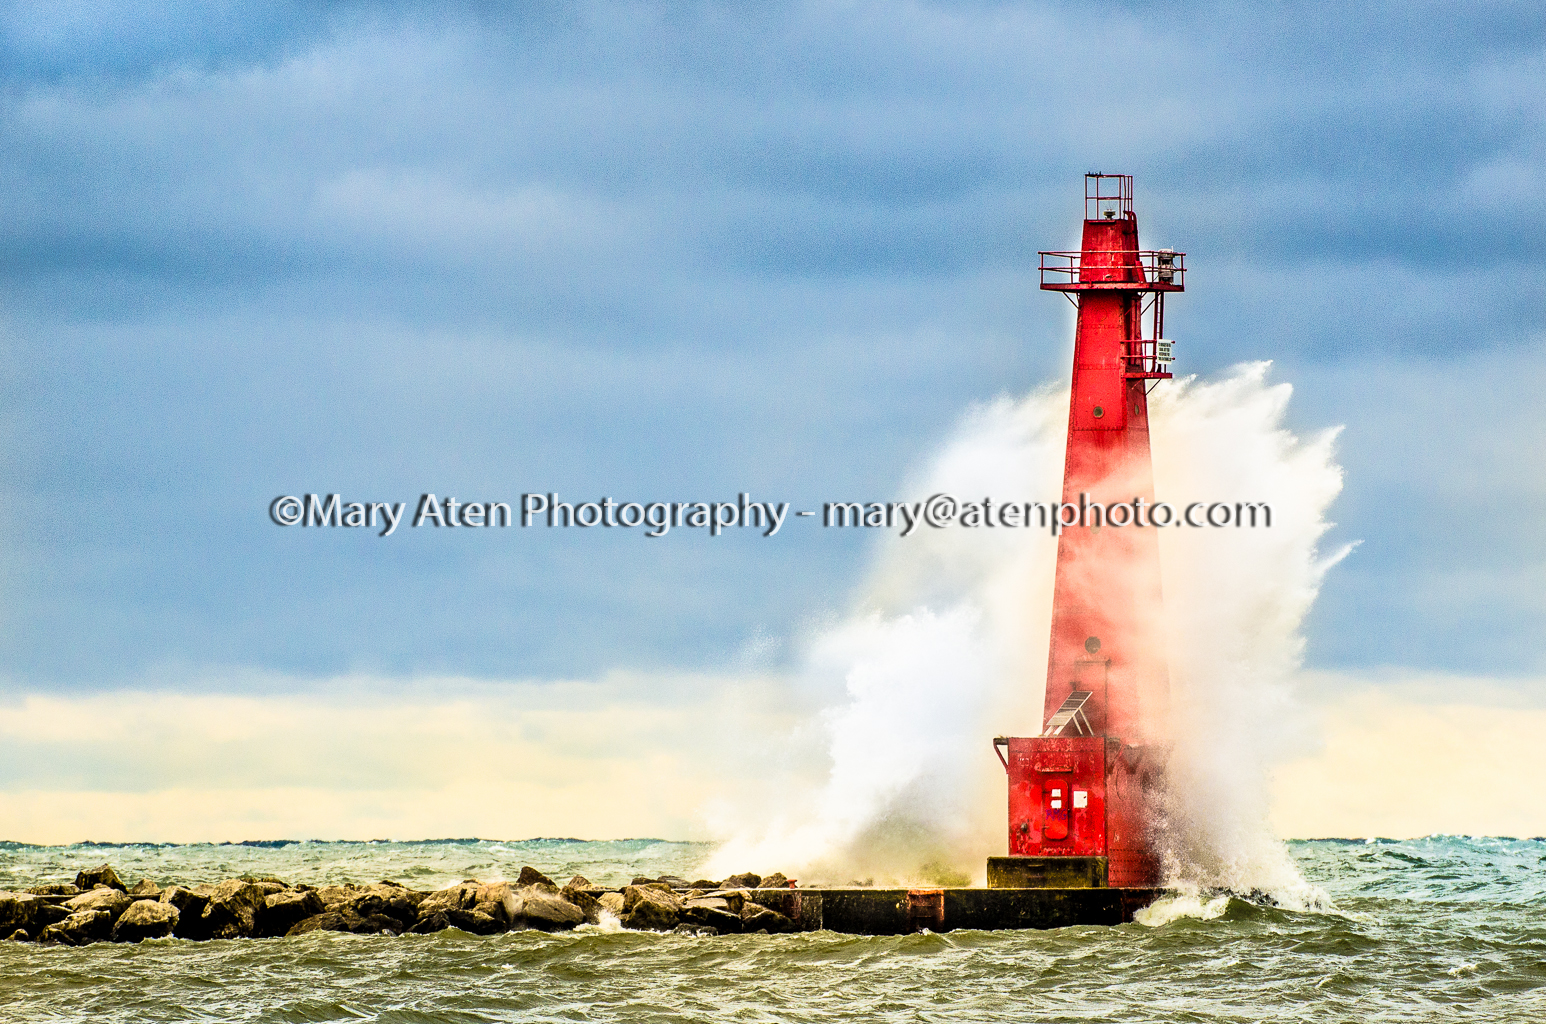 Photo Of Muskegon Lighthouse And Breakwall With Wave Spray